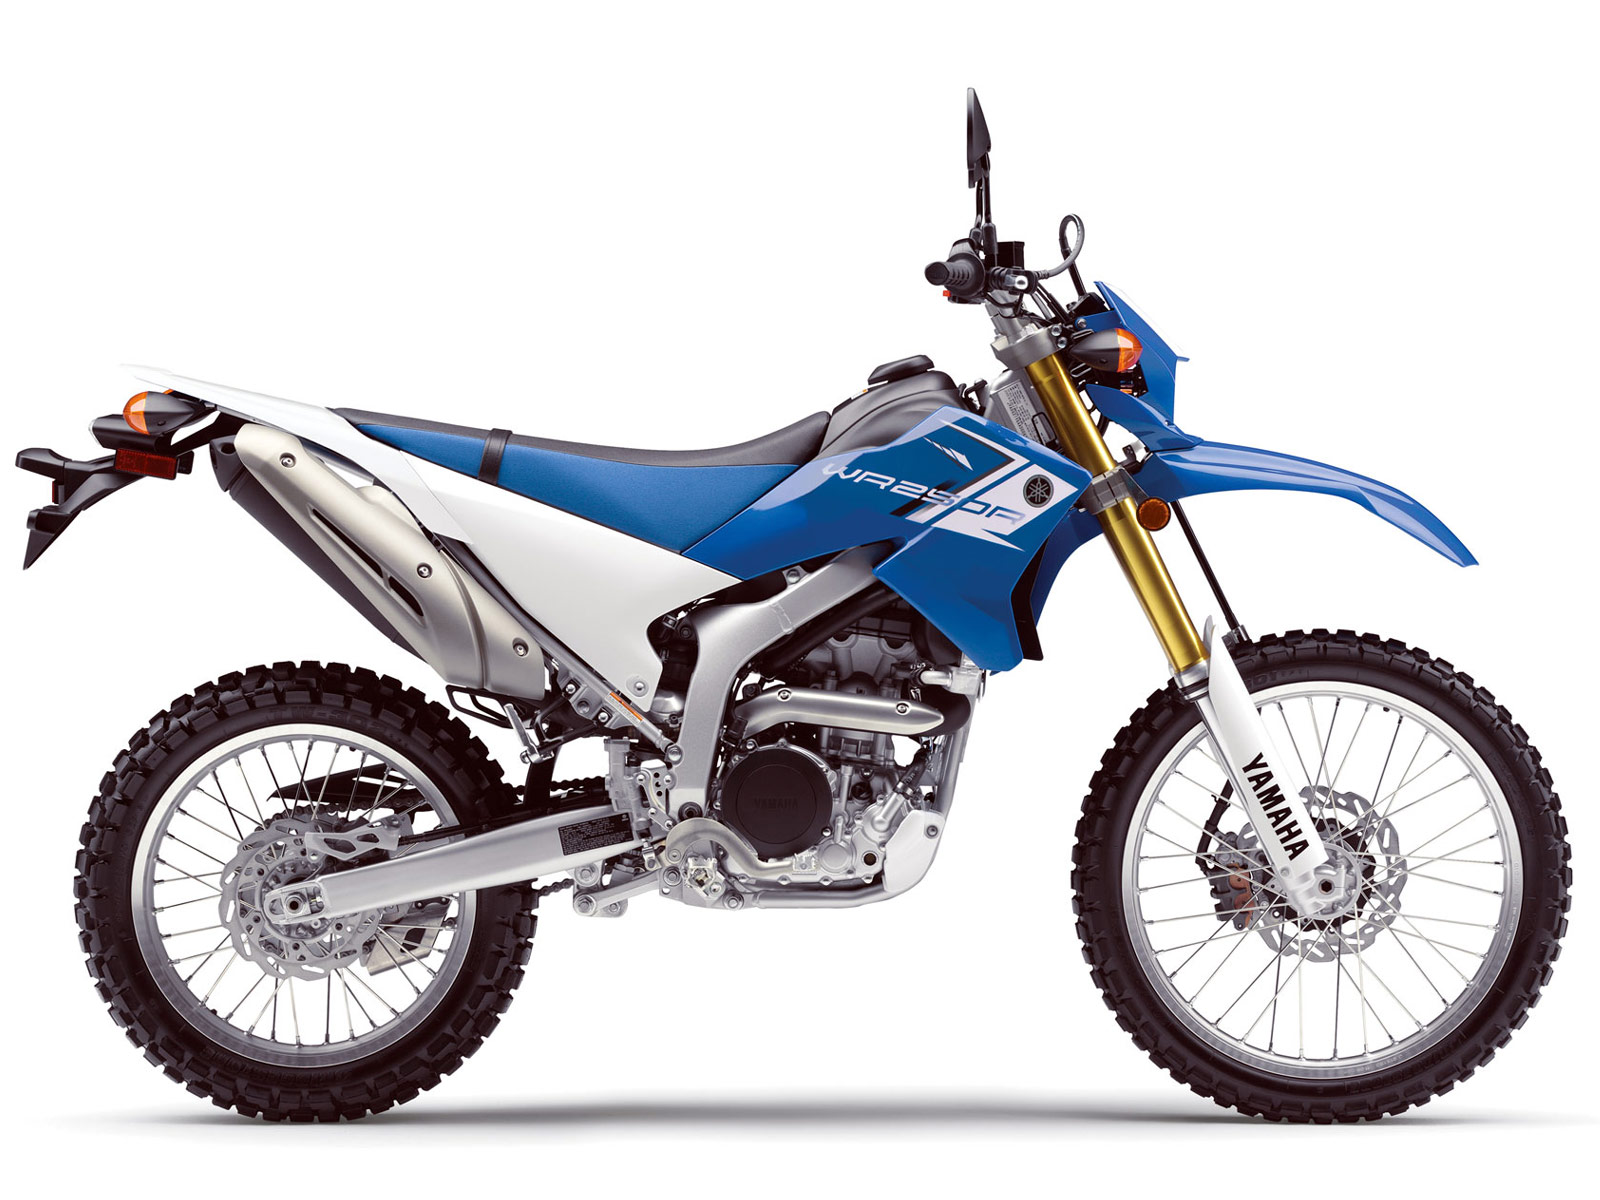 2014 WR250R YAMAHA Pictures, review, specifications ...